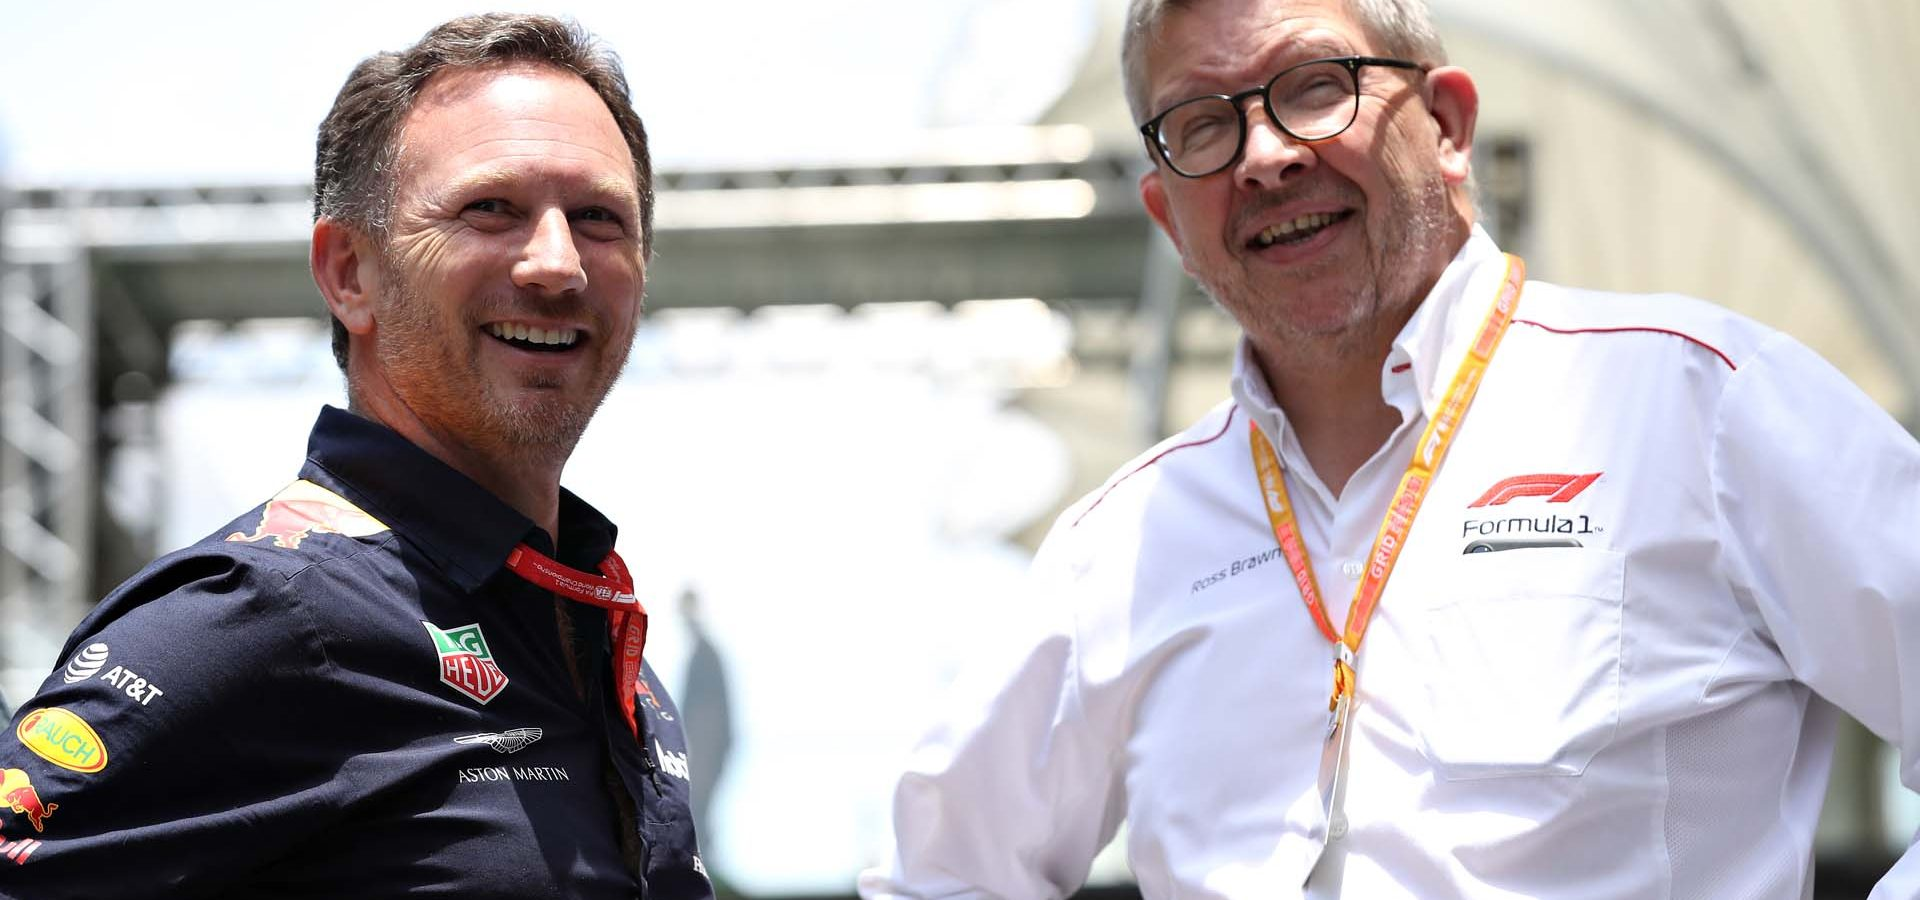 SAO PAULO, BRAZIL - NOVEMBER 17: Red Bull Racing Team Principal Christian Horner talks with Ross Brawn, Managing Director (Sporting) of the Formula One Group, before the F1 Grand Prix of Brazil at Autodromo Jose Carlos Pace on November 17, 2019 in Sao Paulo, Brazil. (Photo by Robert Cianflone/Getty Images) // Getty Images / Red Bull Content Pool  // AP-227C6EH1D2111 // Usage for editorial use only //